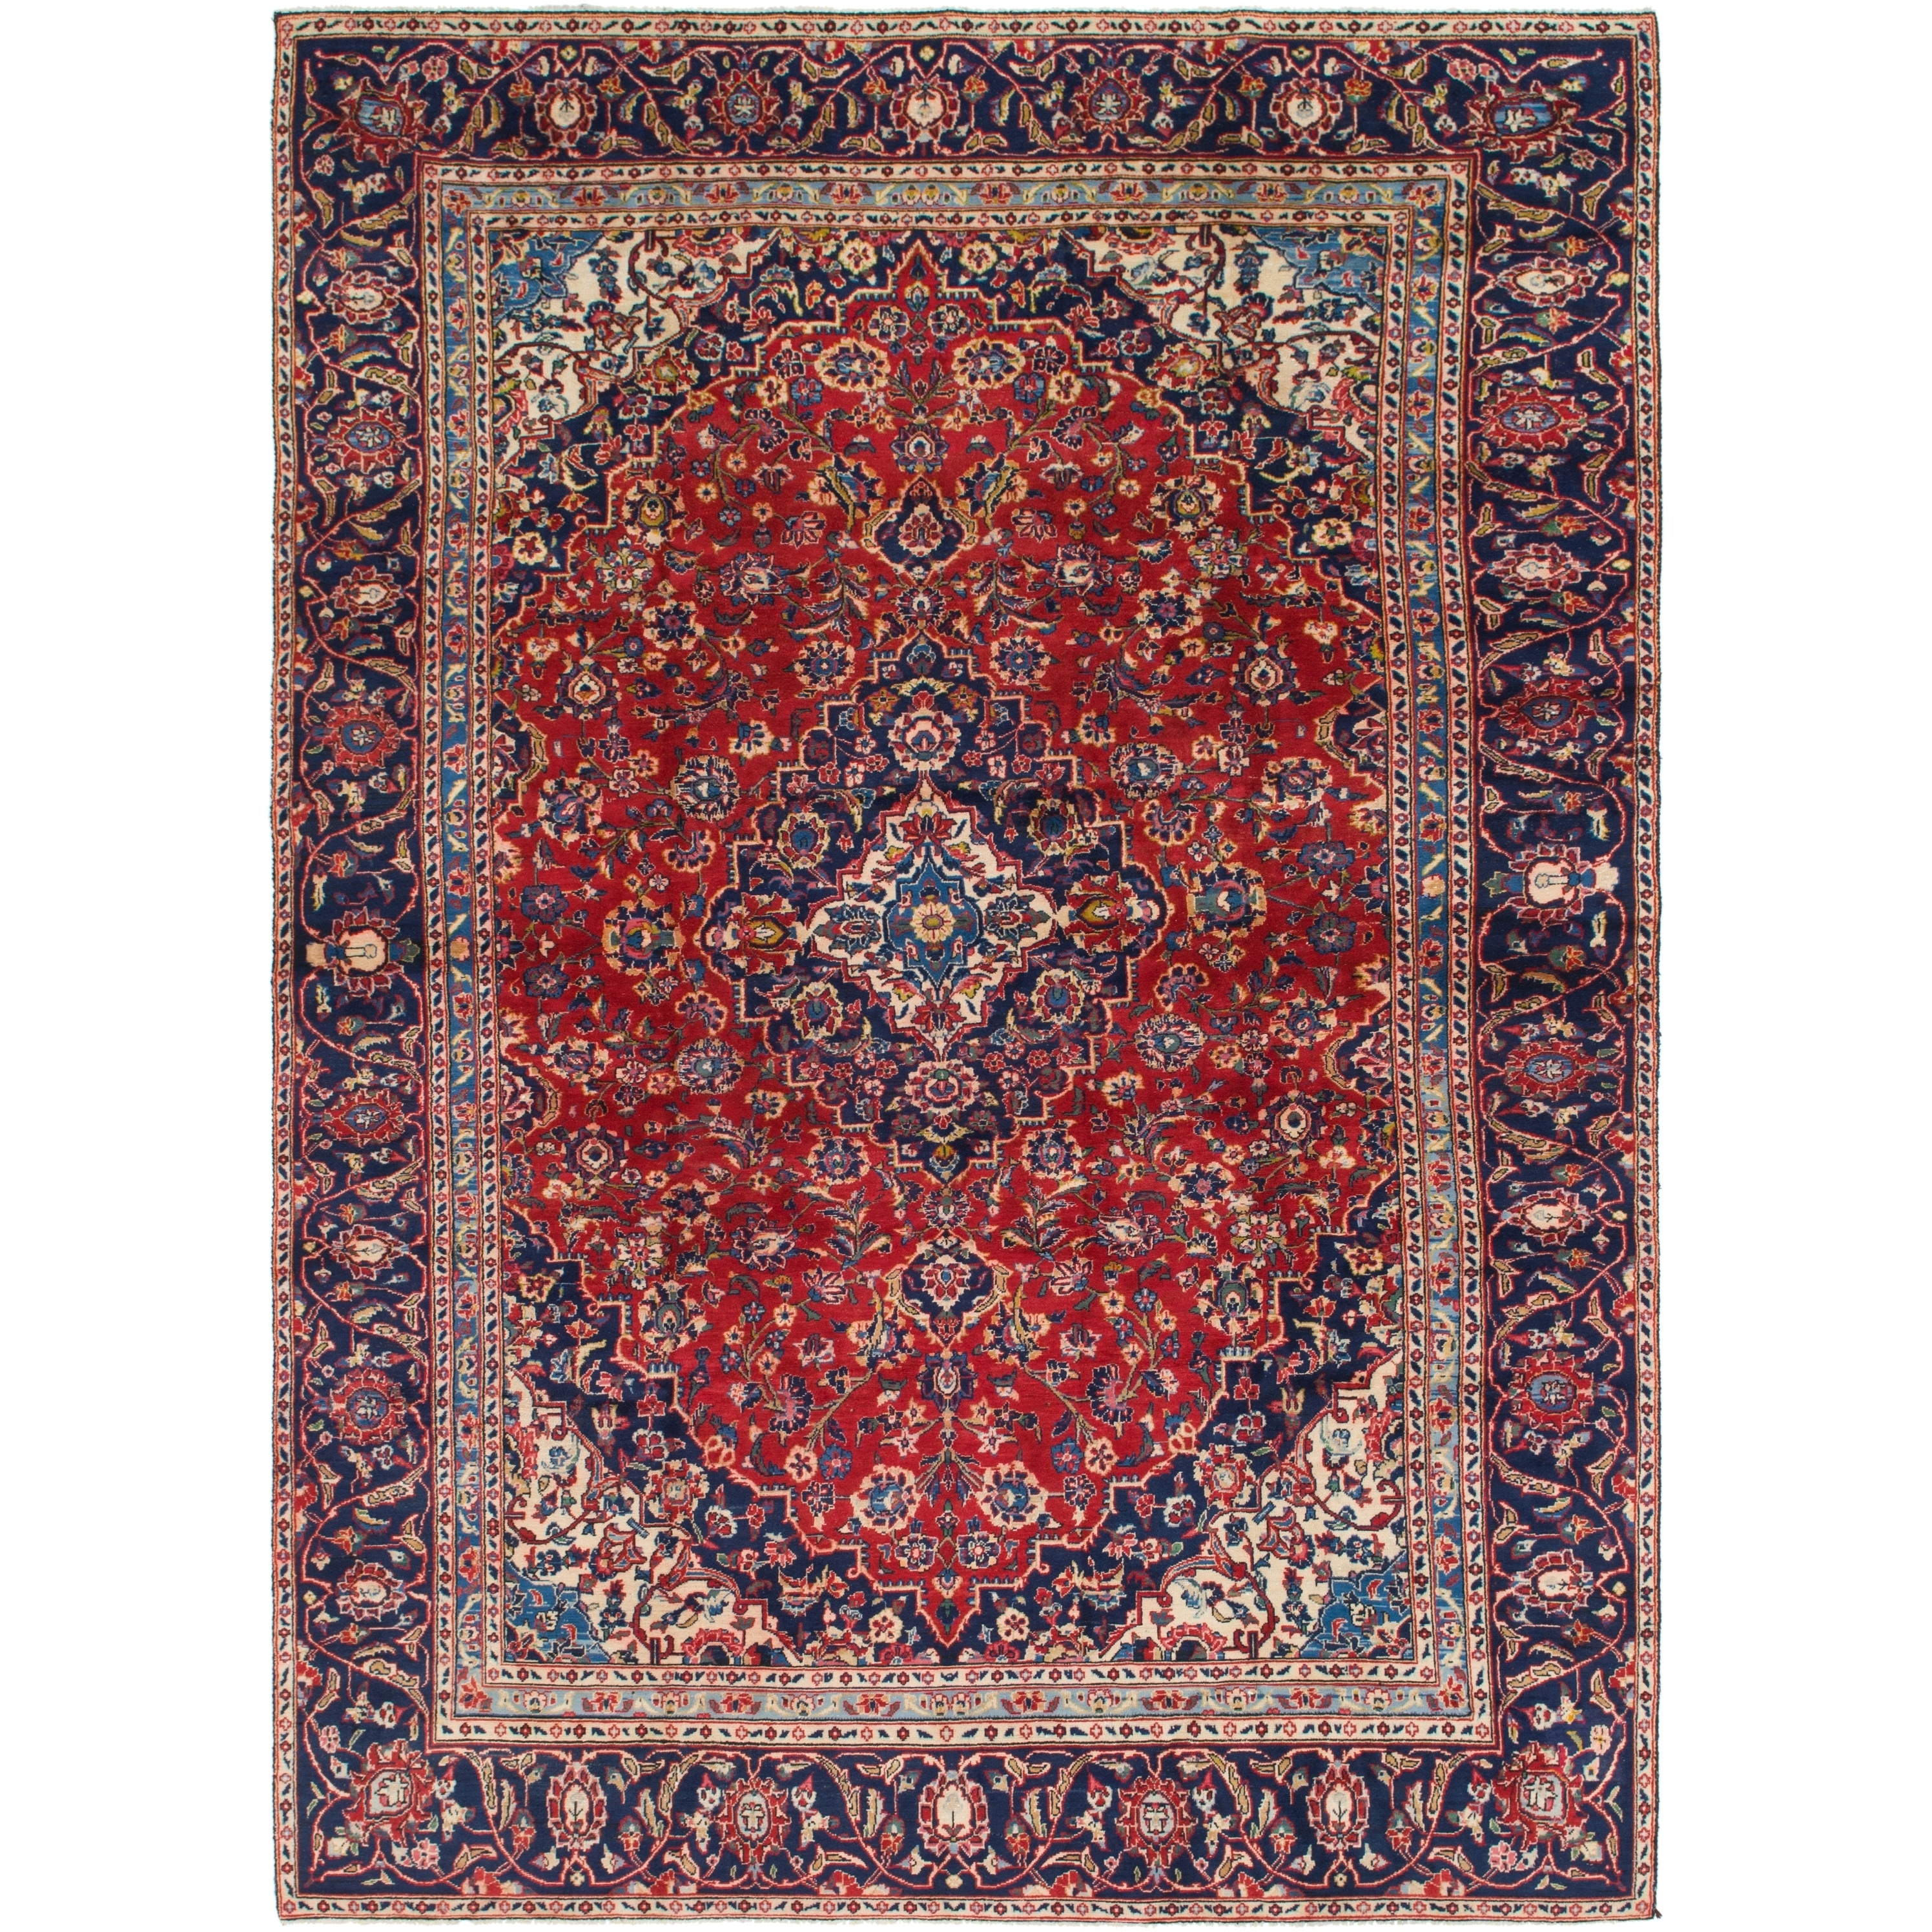 Hand Knotted Kashan Semi Antique Wool Area Rug - 8 8 x 12 2 (Red - 8 8 x 12 2)